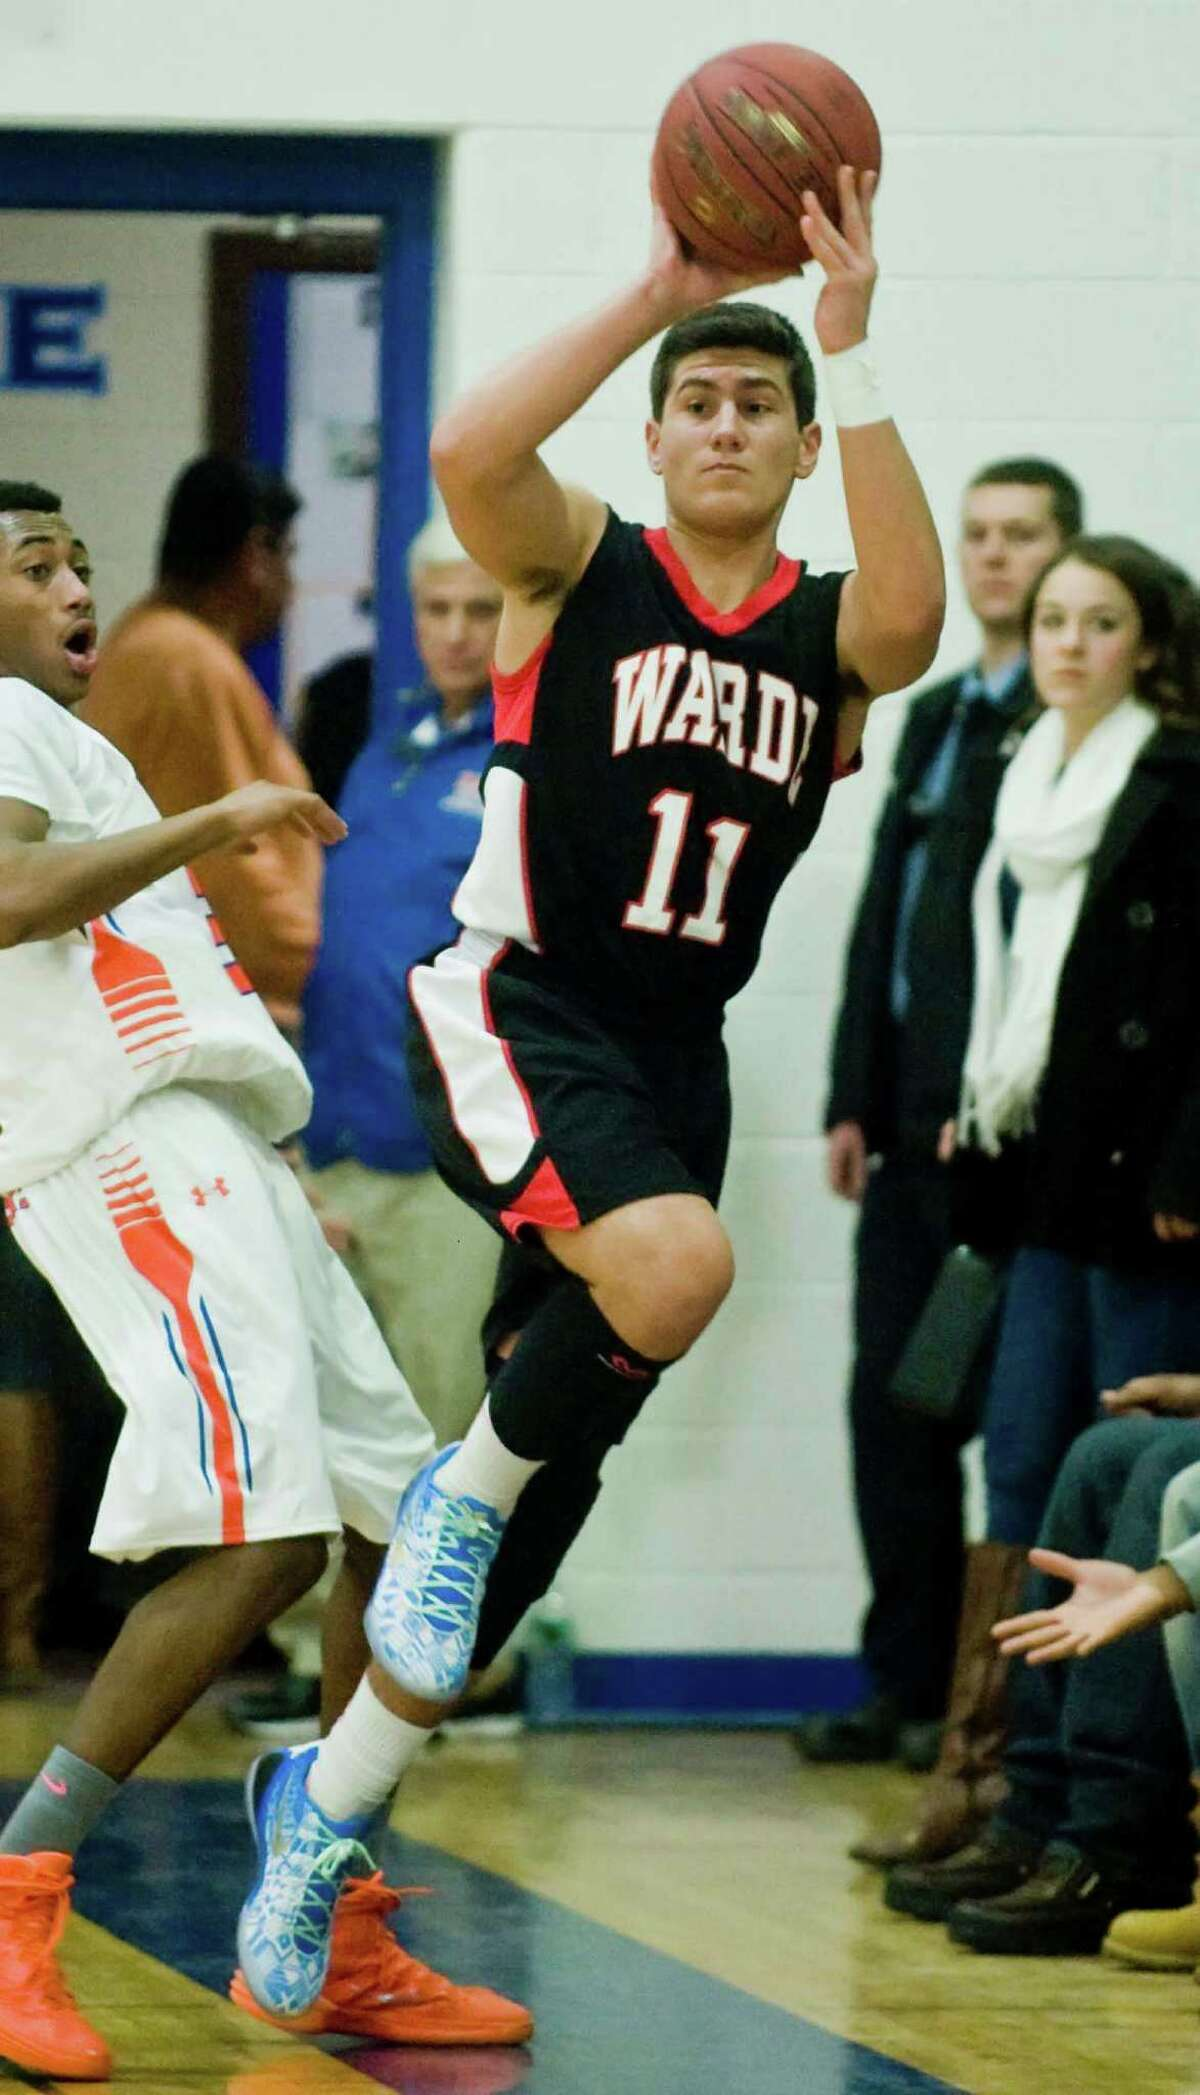 Fairfield Warde High School's Giacomo Brancato looks to pass in a game against Danbury High School, played at Danbury. Friday, Dec. 19, 2014